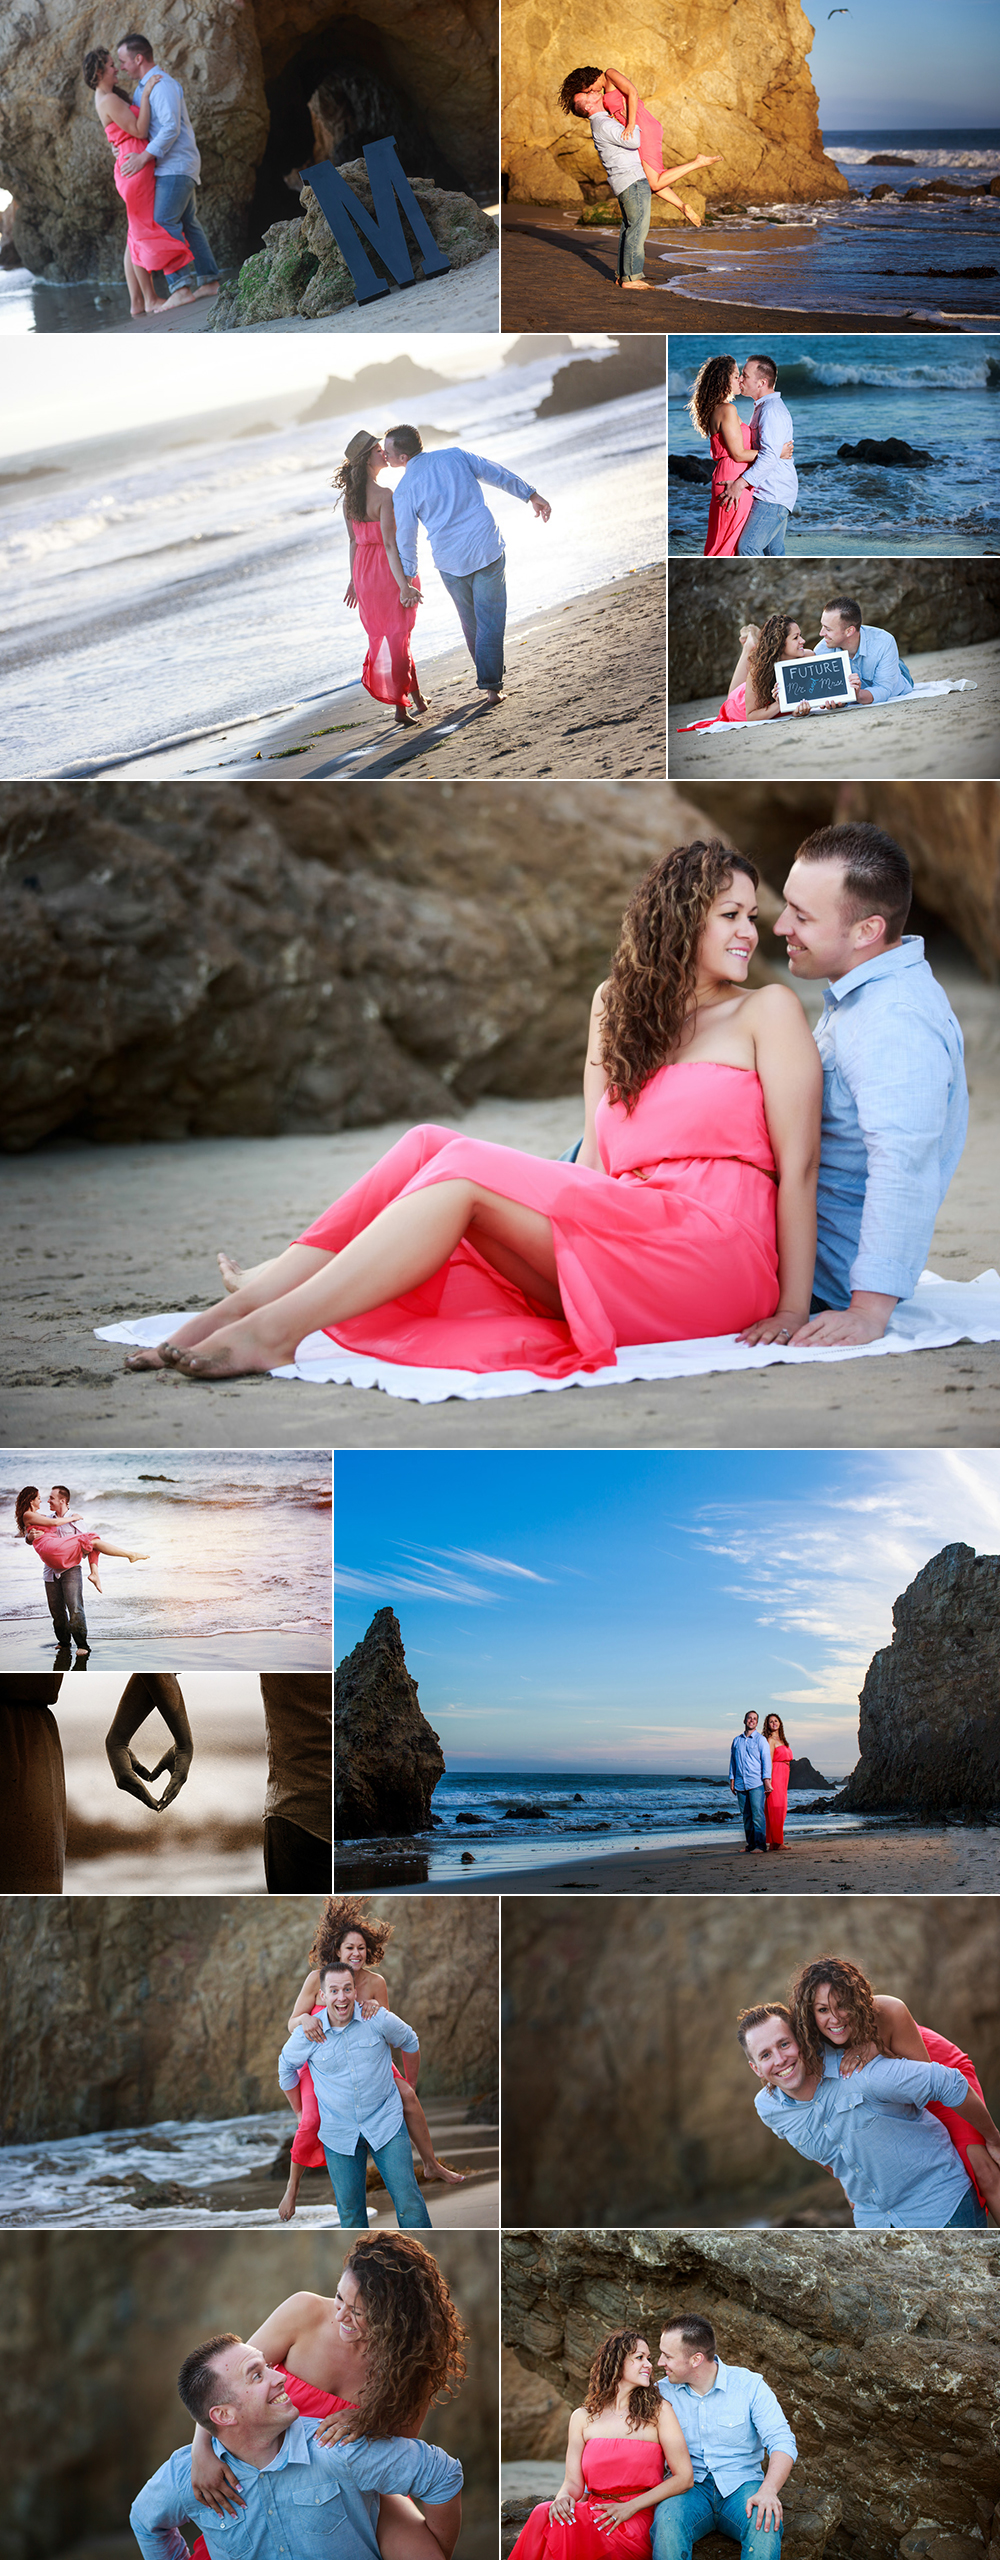 , Iris and Randy's Fire Station Engagement Session | El Matador Beach Engagement Session | Santa Clarita, Los Angeles Wedding Photographers